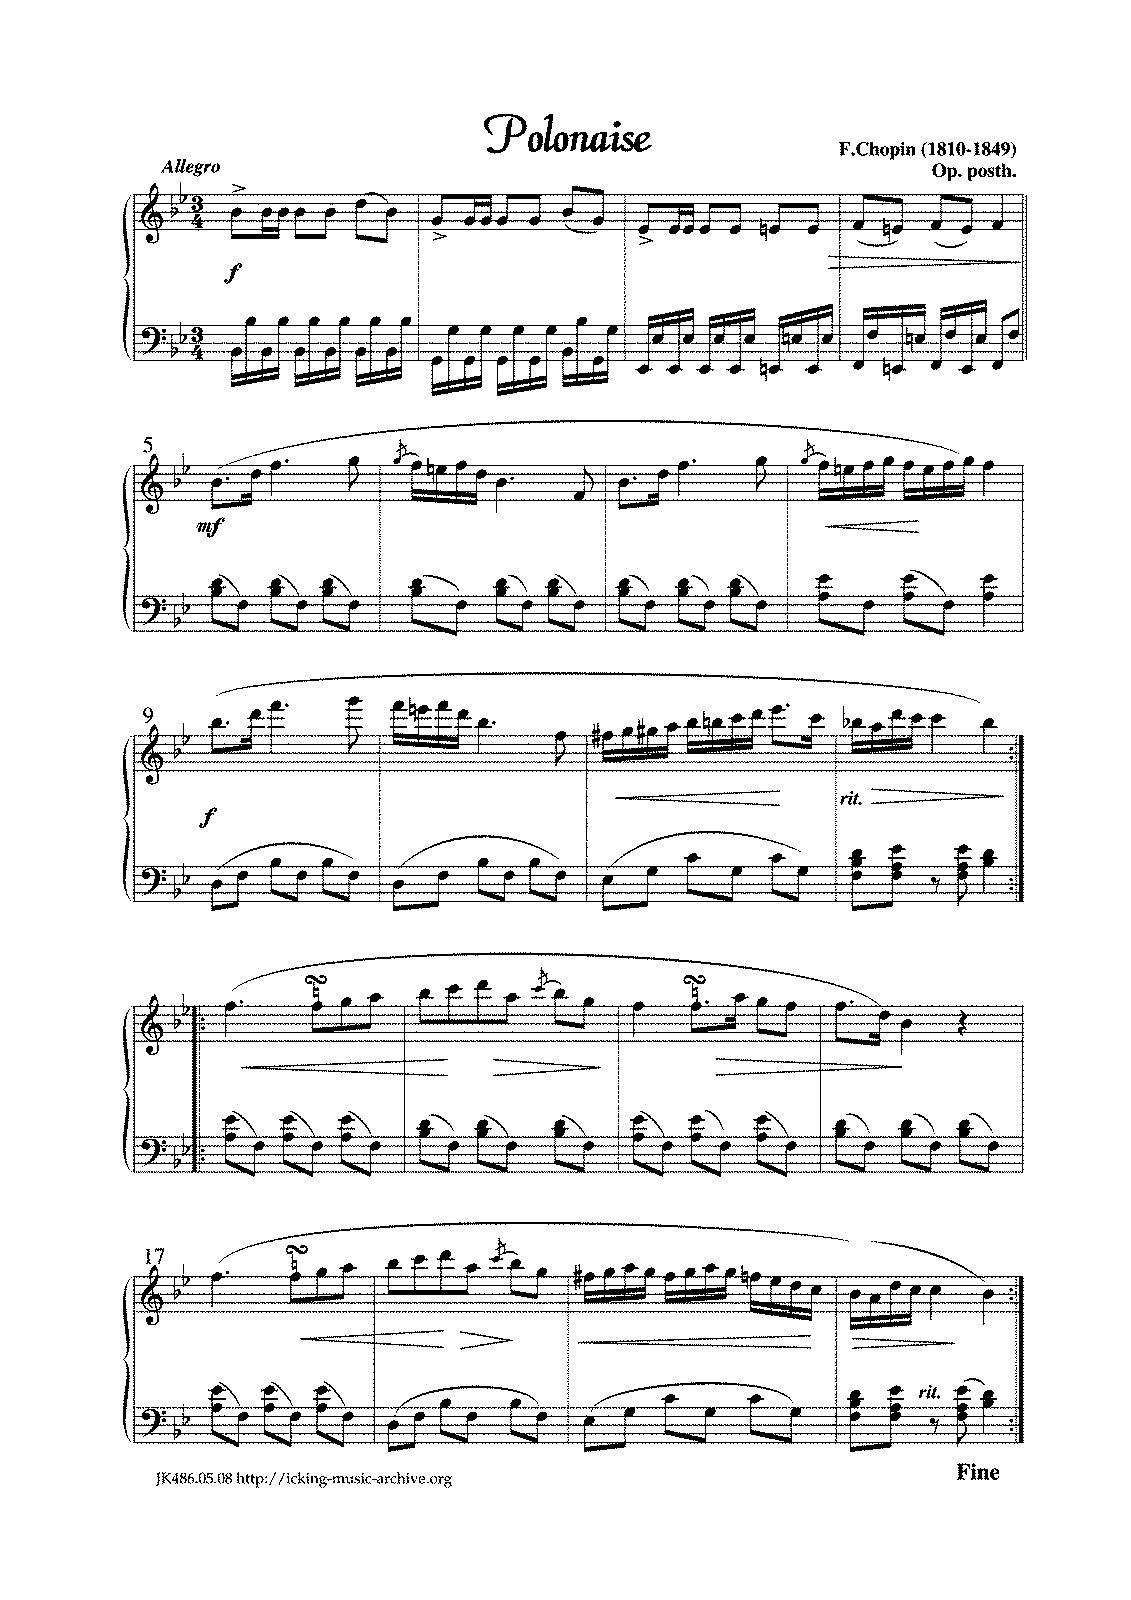 WIMA.4fd6-Chopin Polonaise-OpPost.pdf